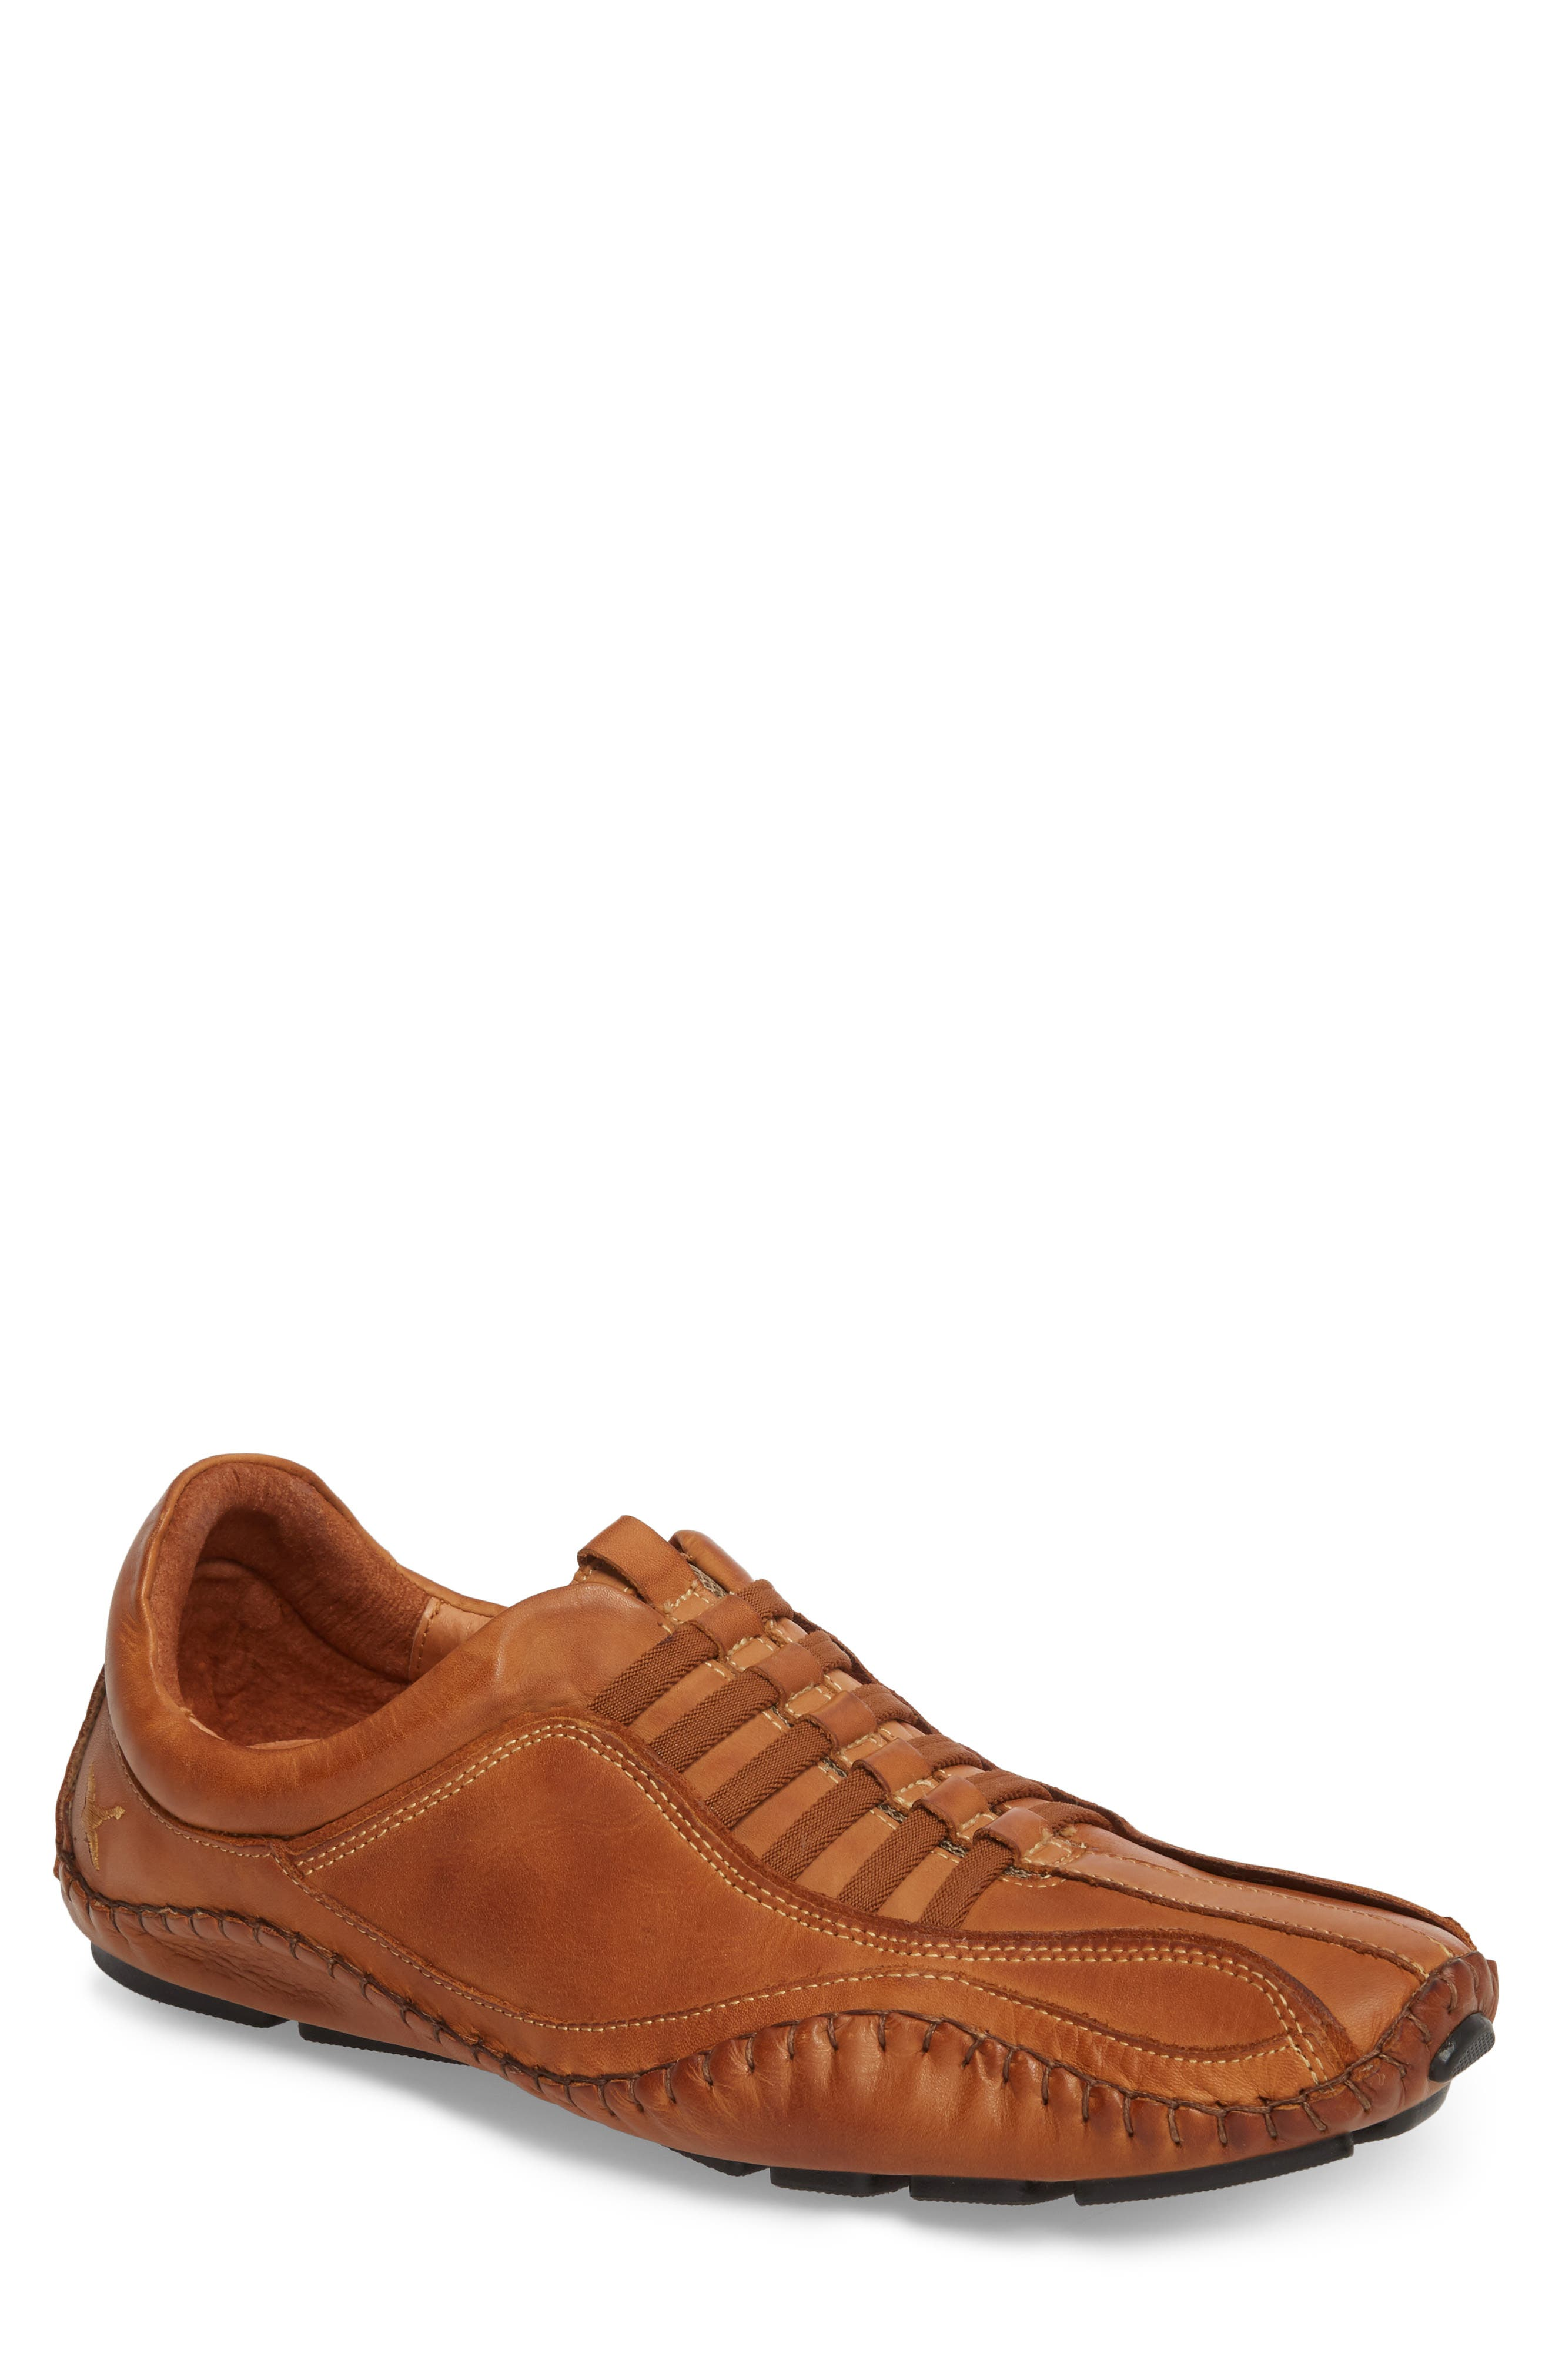 'Fuencarral' Driving Shoe,                             Main thumbnail 1, color,                             LIGHT BROWN